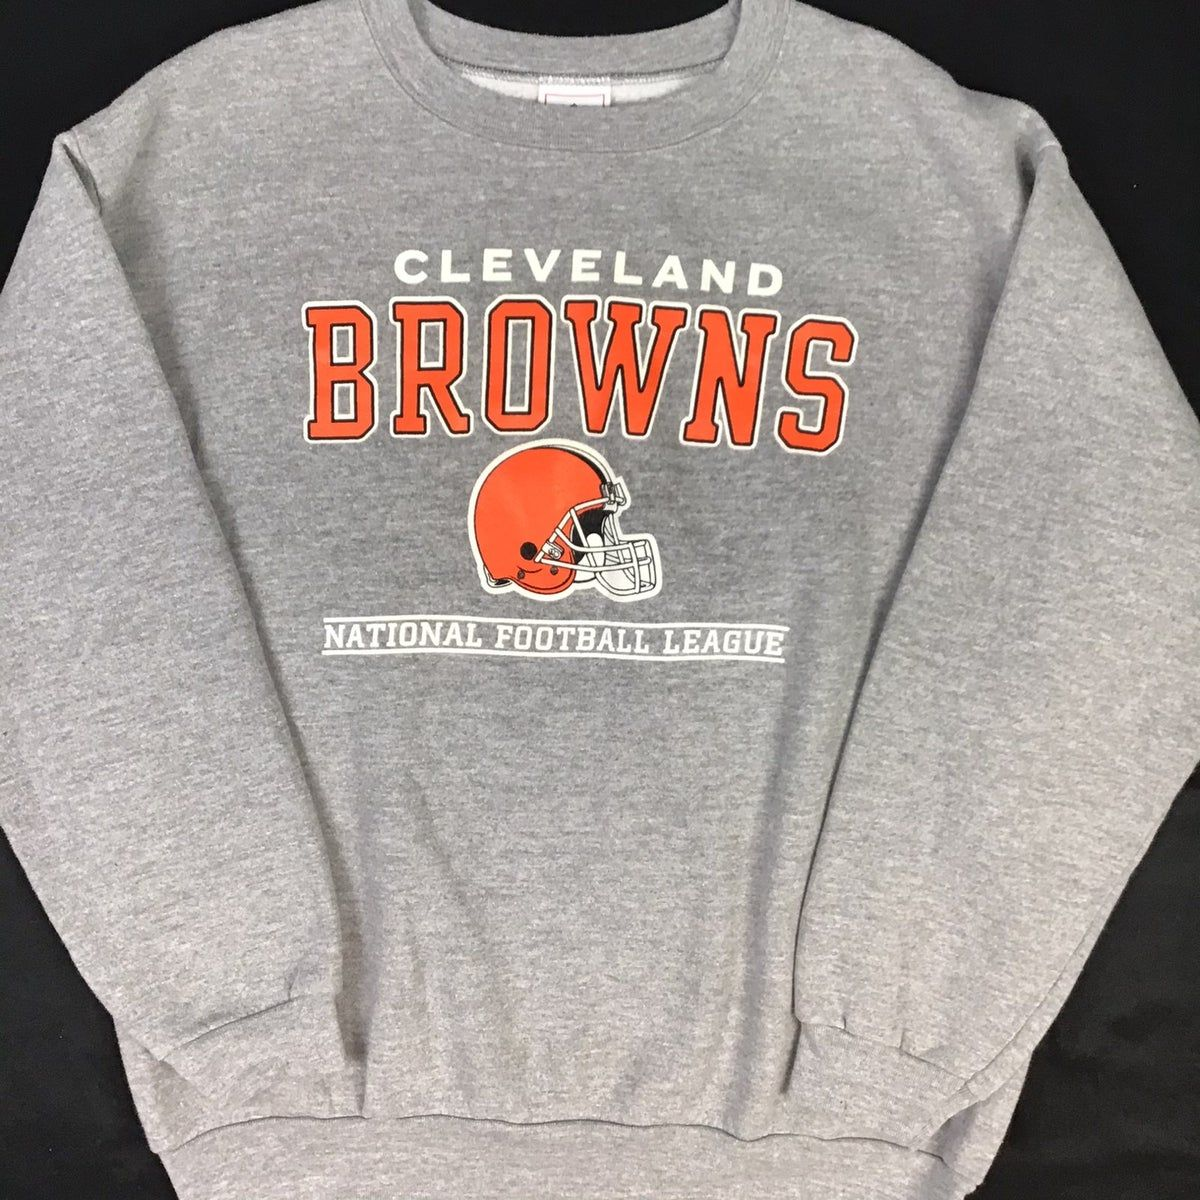 Pin By Abbi Hile On Christmas 2020 Cleveland Browns Sweatshirt Sweatshirts Cleveland Browns Shirts [ 1200 x 1200 Pixel ]